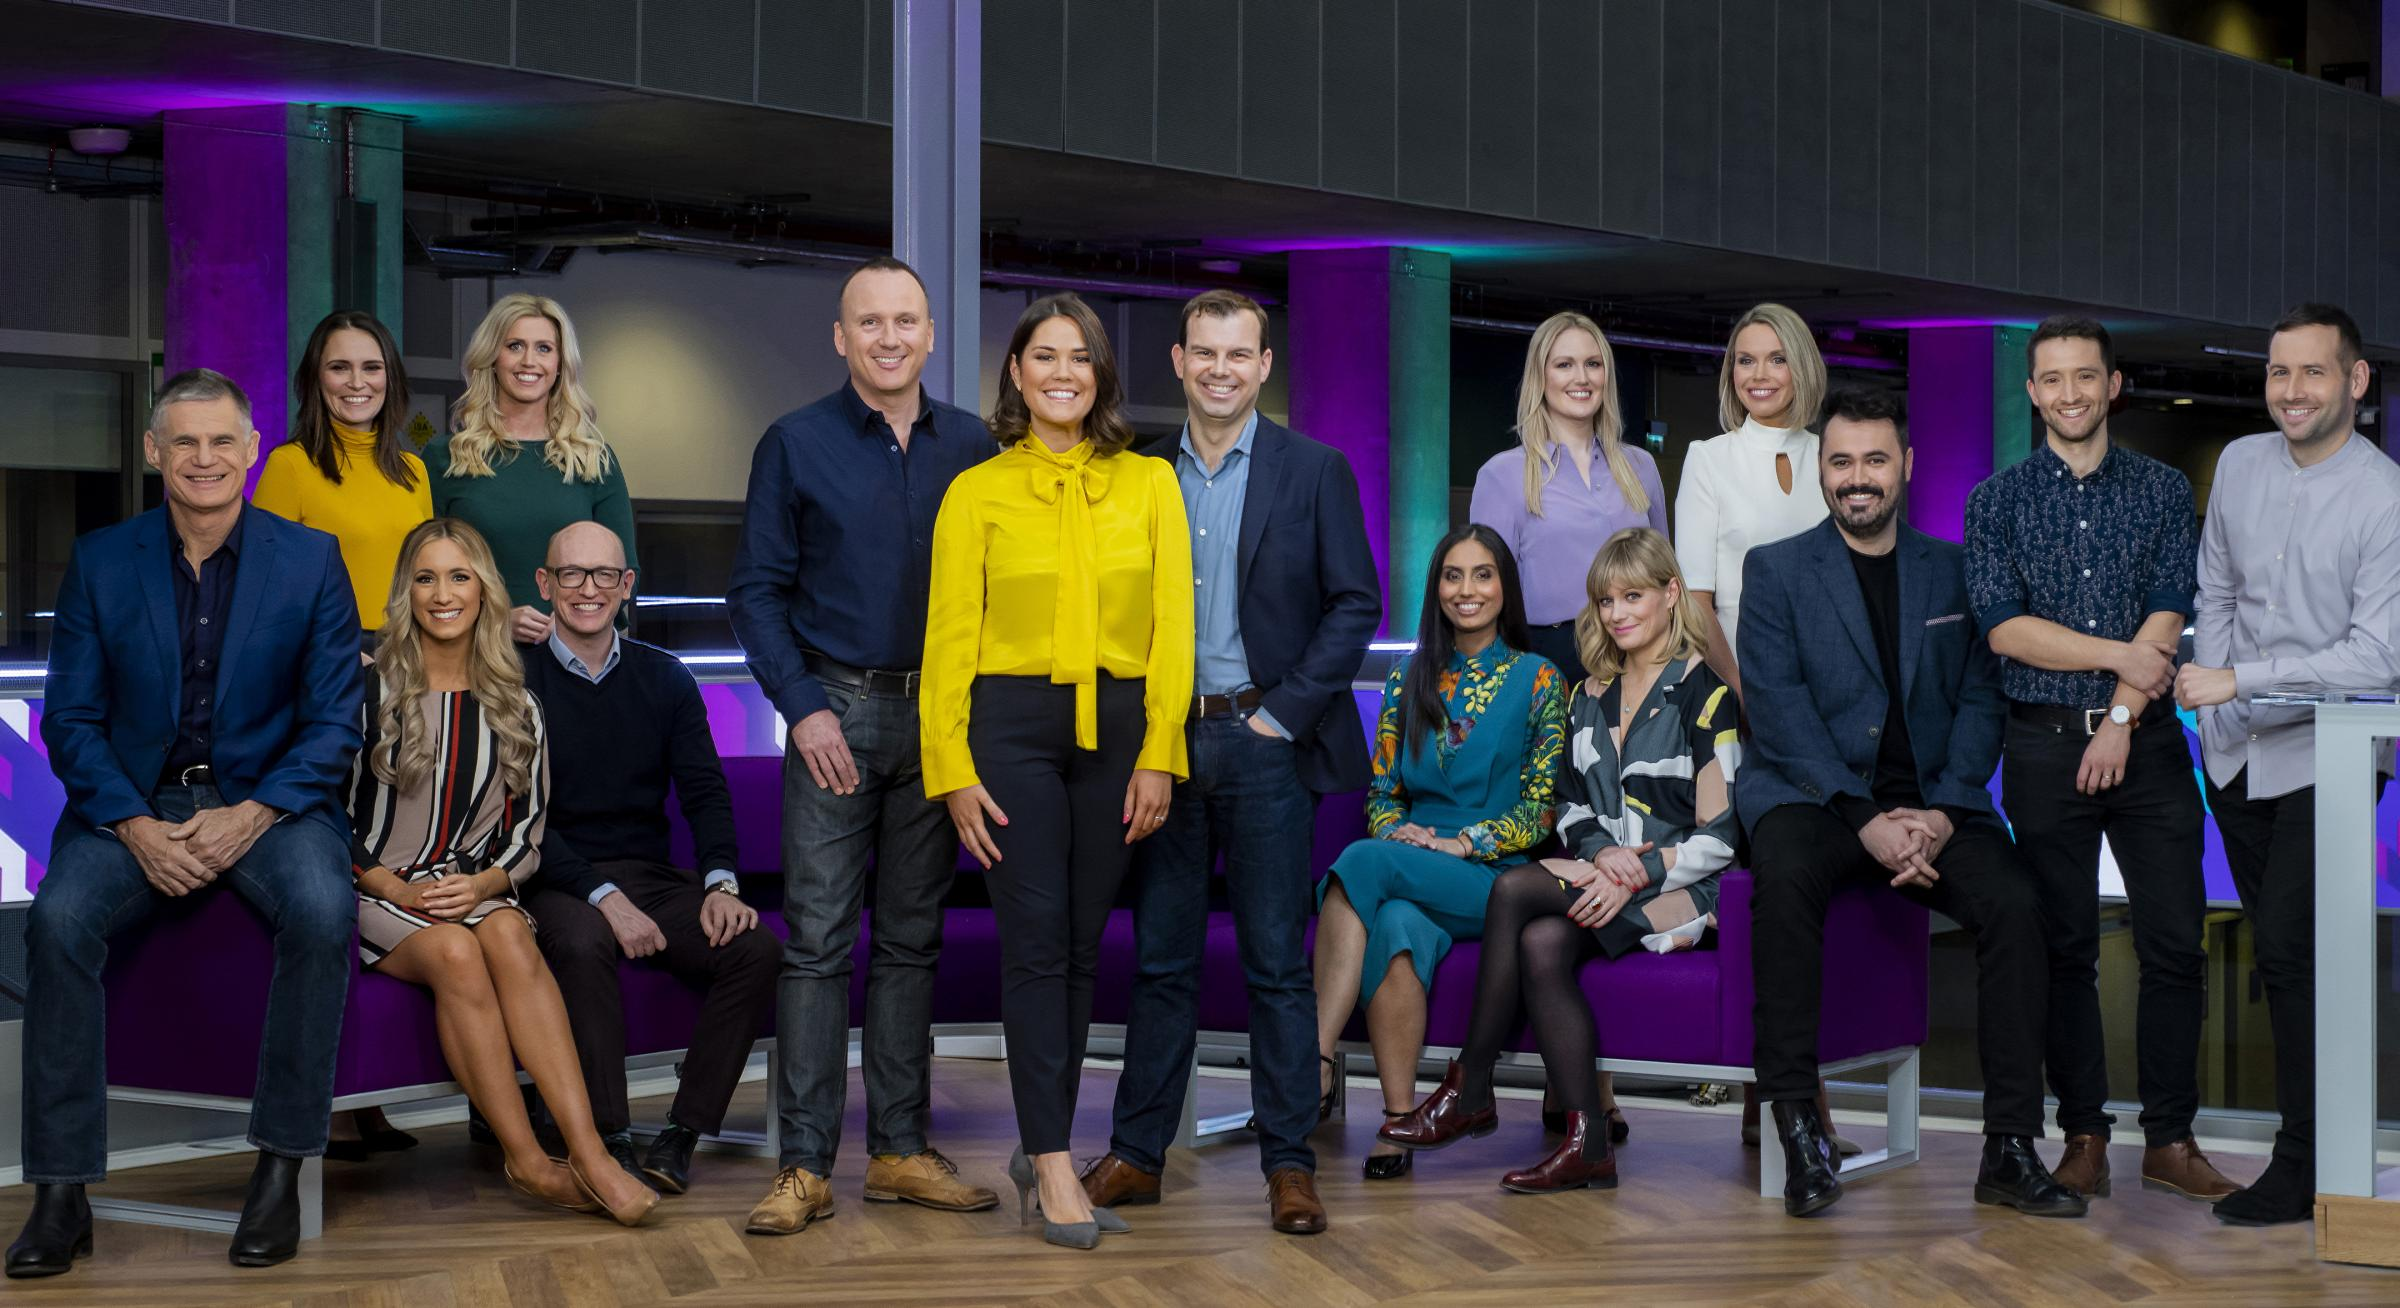 Three months after its launch, how strong is the pulse of the nation's newest TV channel?